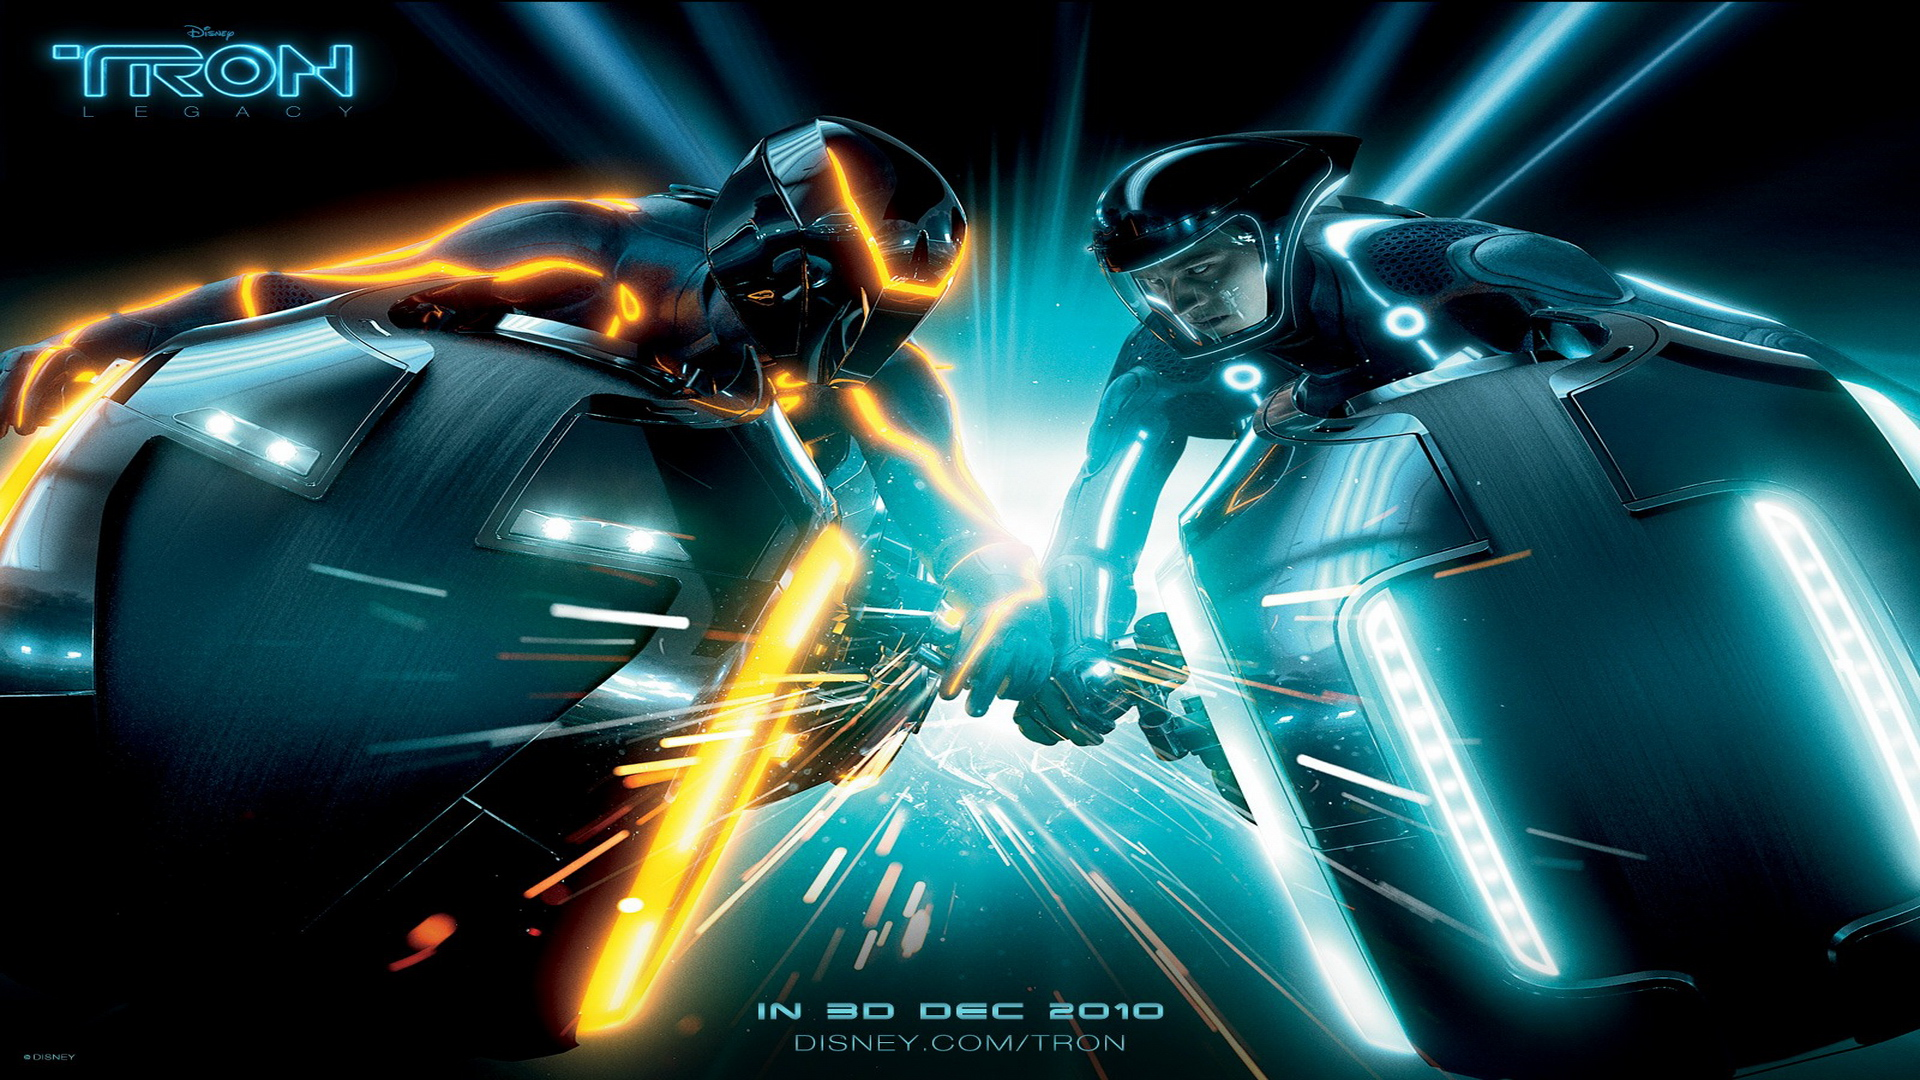 Wallpaper 3d Bike Tron Legacy Download: Tron HD Wallpapers 1080p